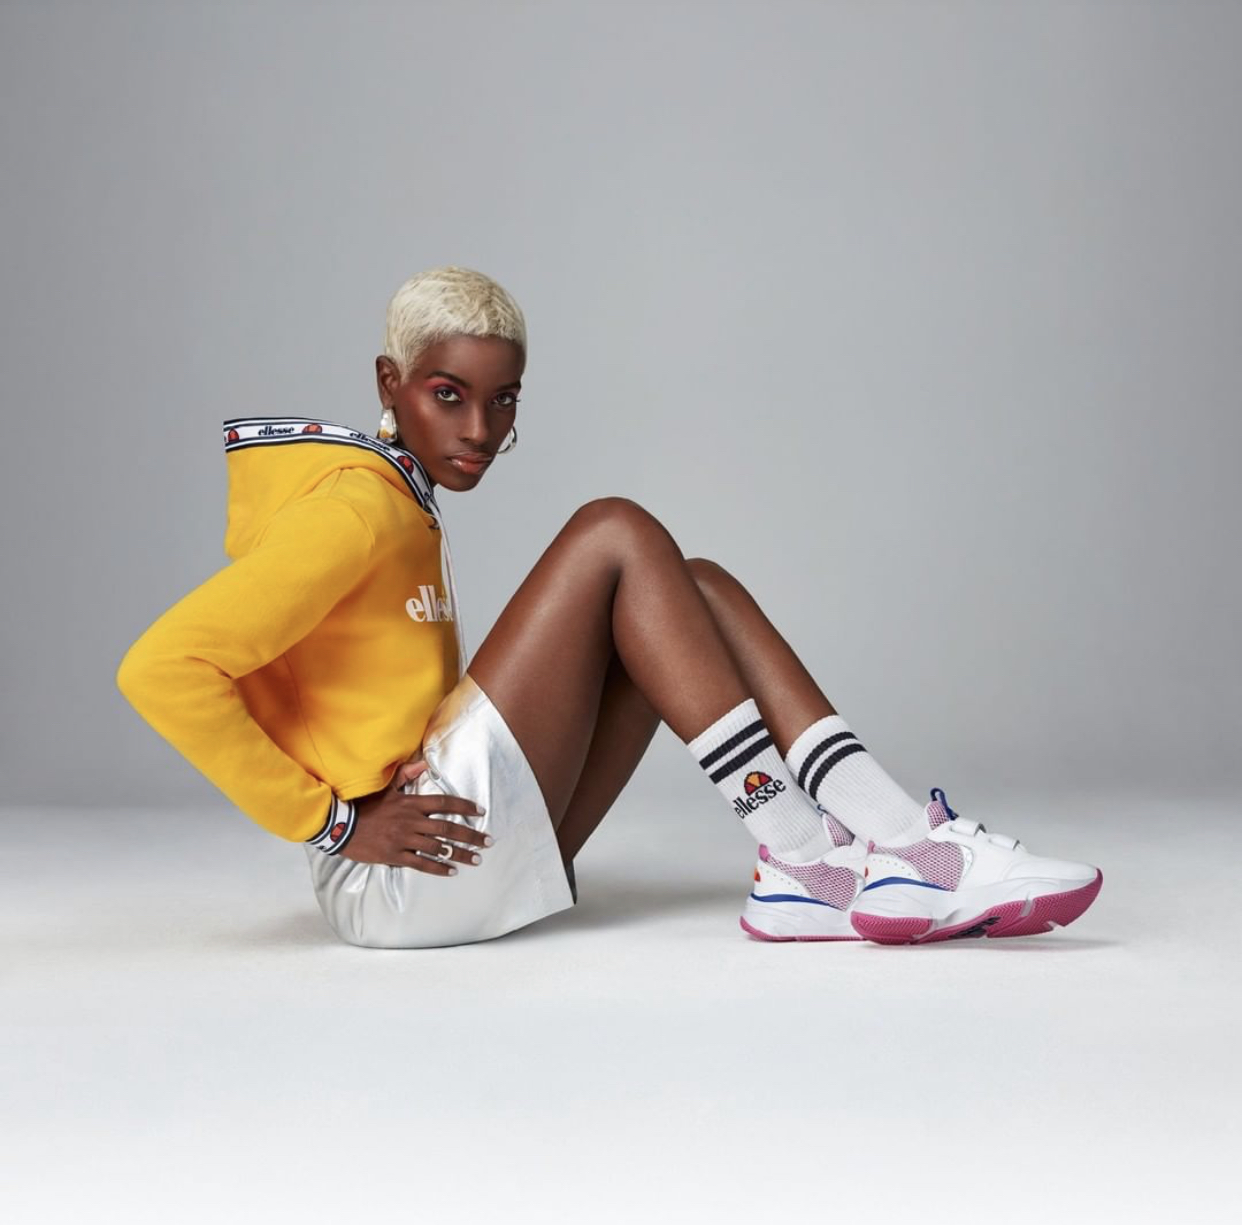 bon plan shopping sneakers courir ellesse reduction 2019